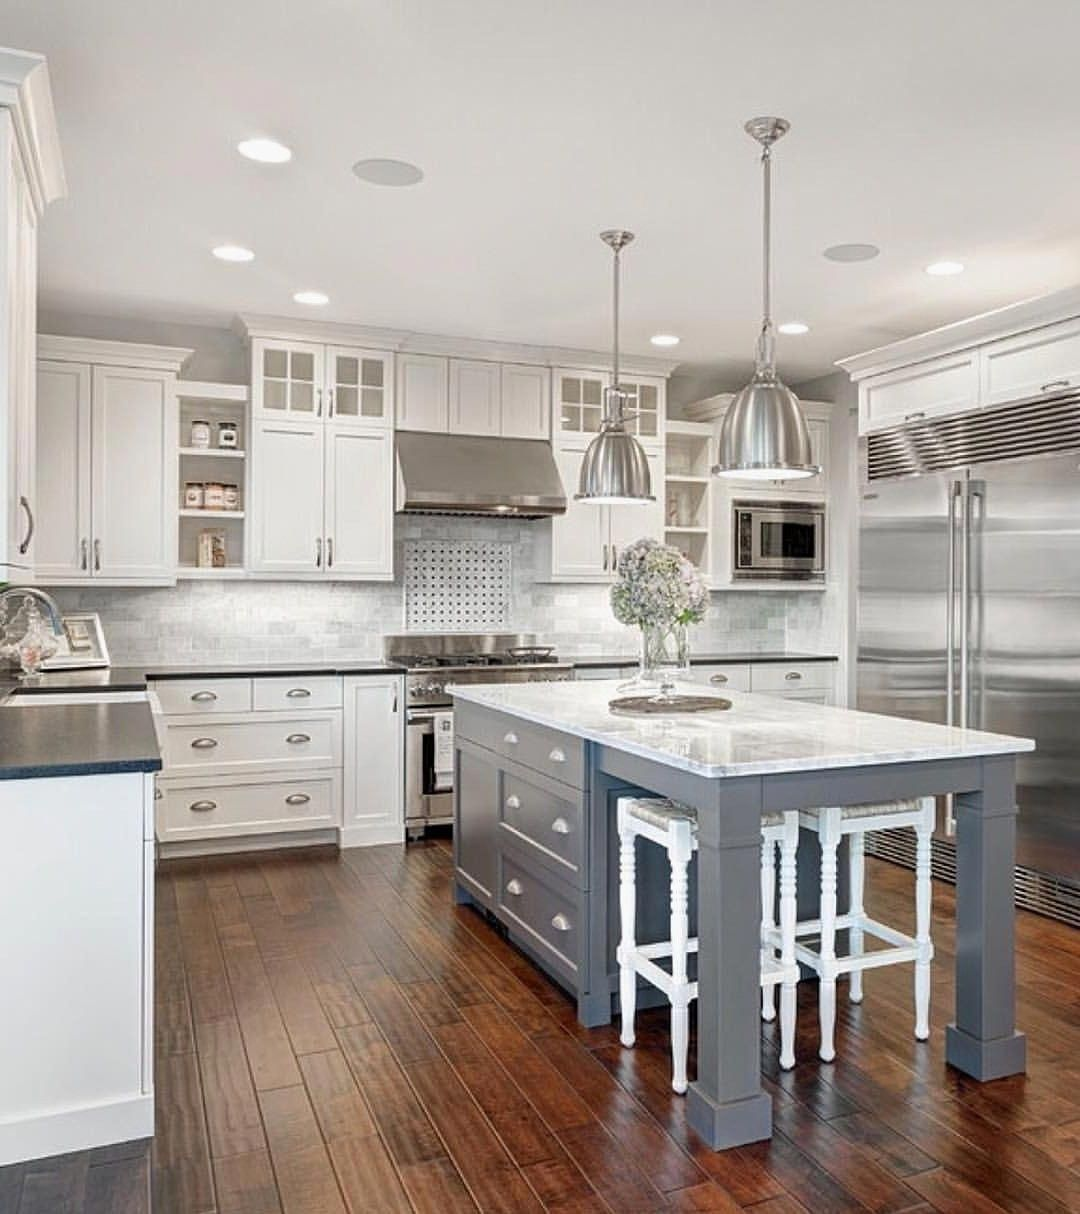 White Kitchen Cabinets With Different Color Island Awesome Cabinet Kitchen Cabinets Vancou In 2020 New Kitchen Cabinets Kitchen Renovation Refurbished Kitchen Cabinets